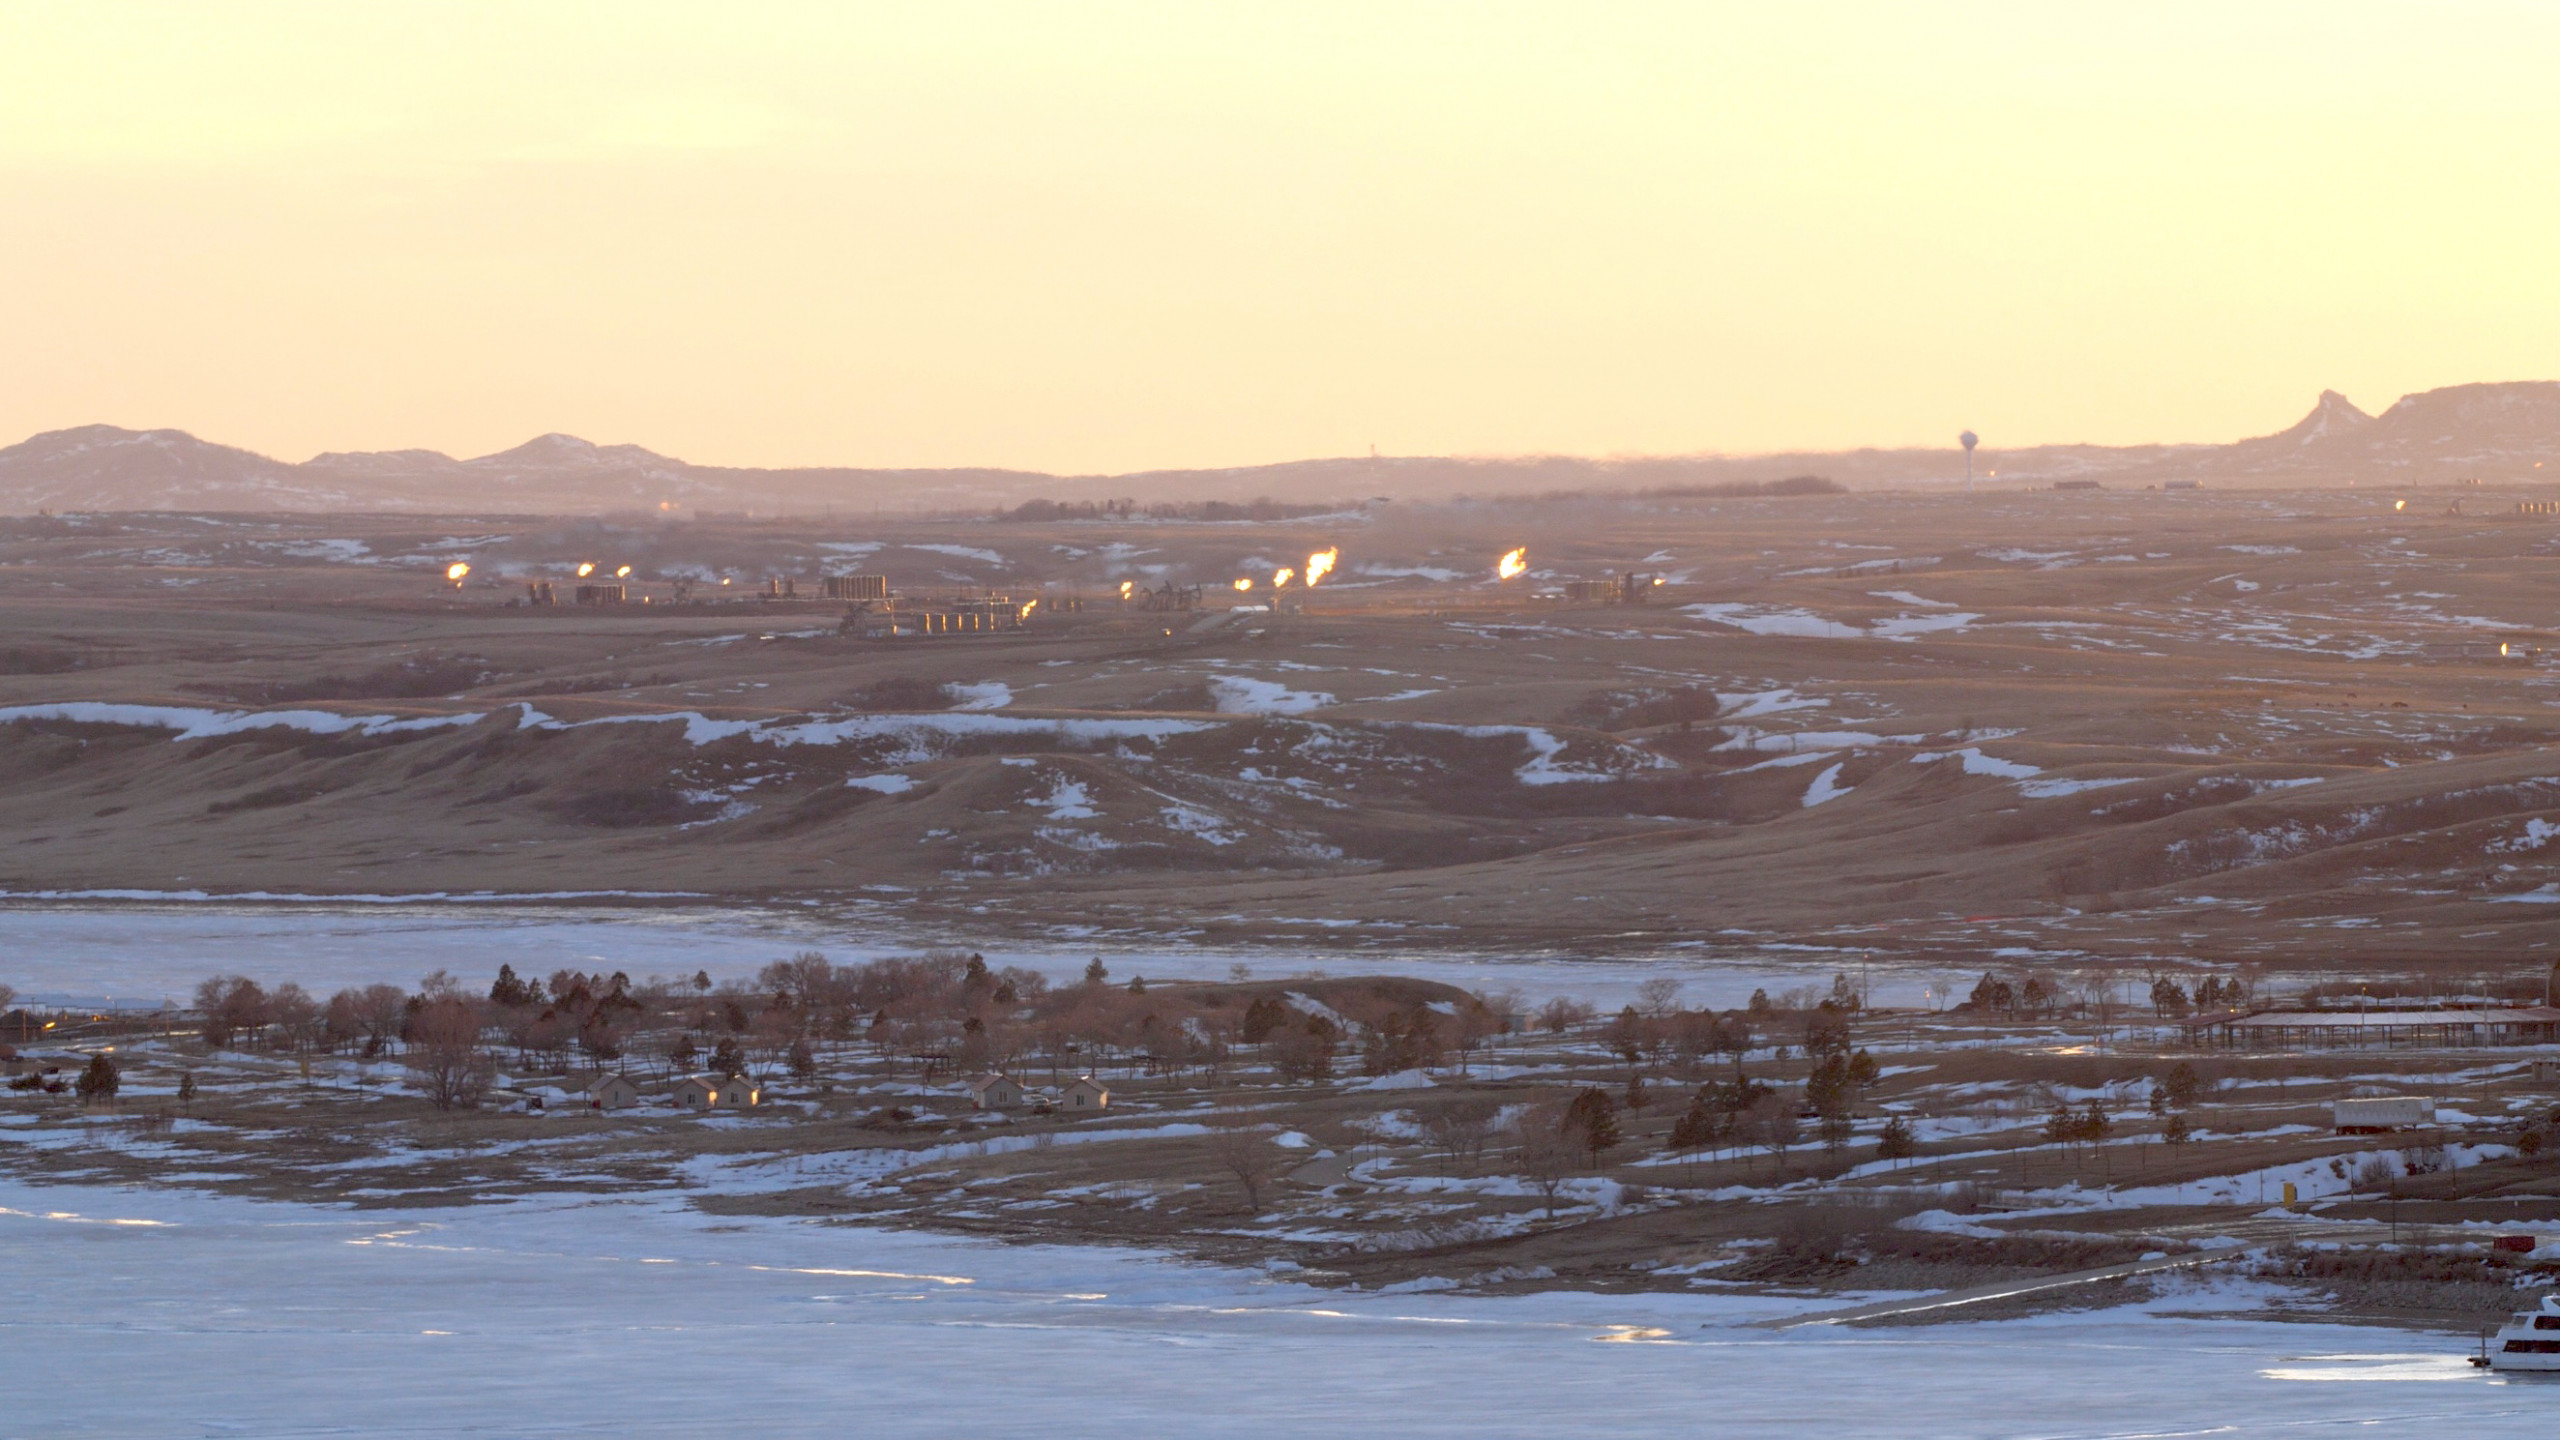 Natural gas flaring on the lands of the Mandan, Hidatsa and Arikara Nations. As seen from the bluffs overlooking the Missouri River across from Four Bears Village, MHA Nation, March 2019.  Photo: Angela Anderson